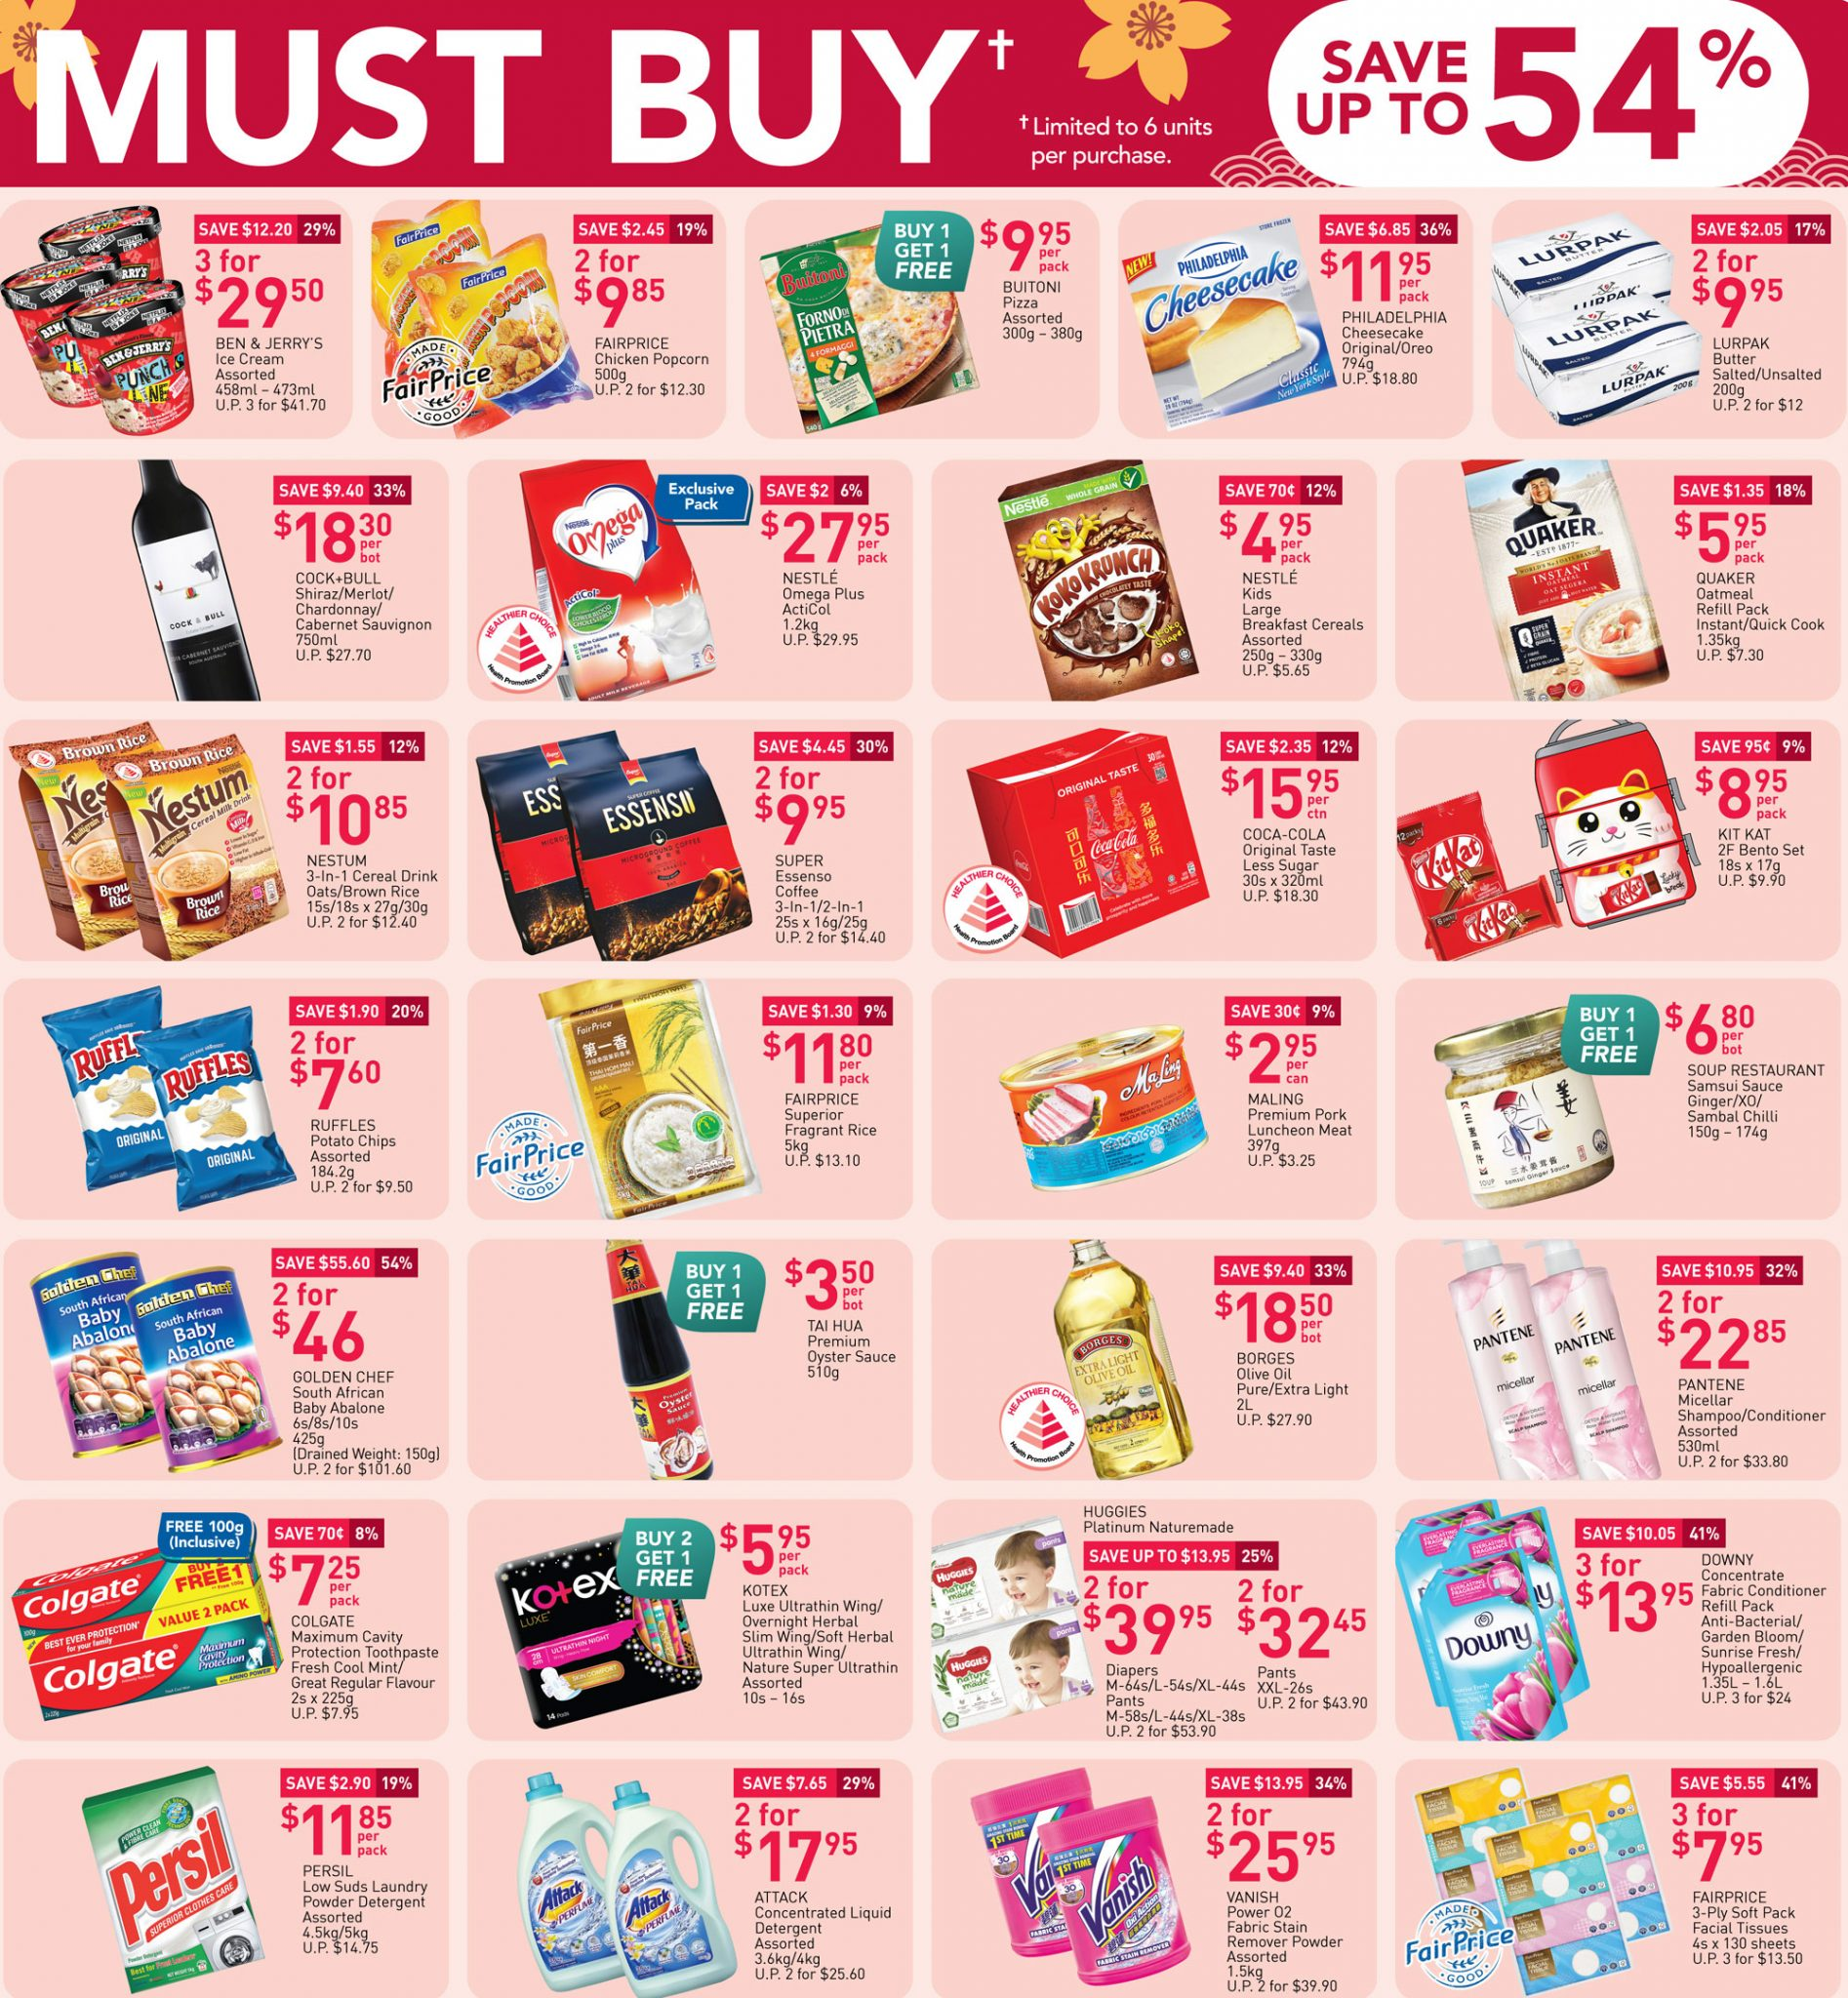 Must-buy items from now till 27 January 2021